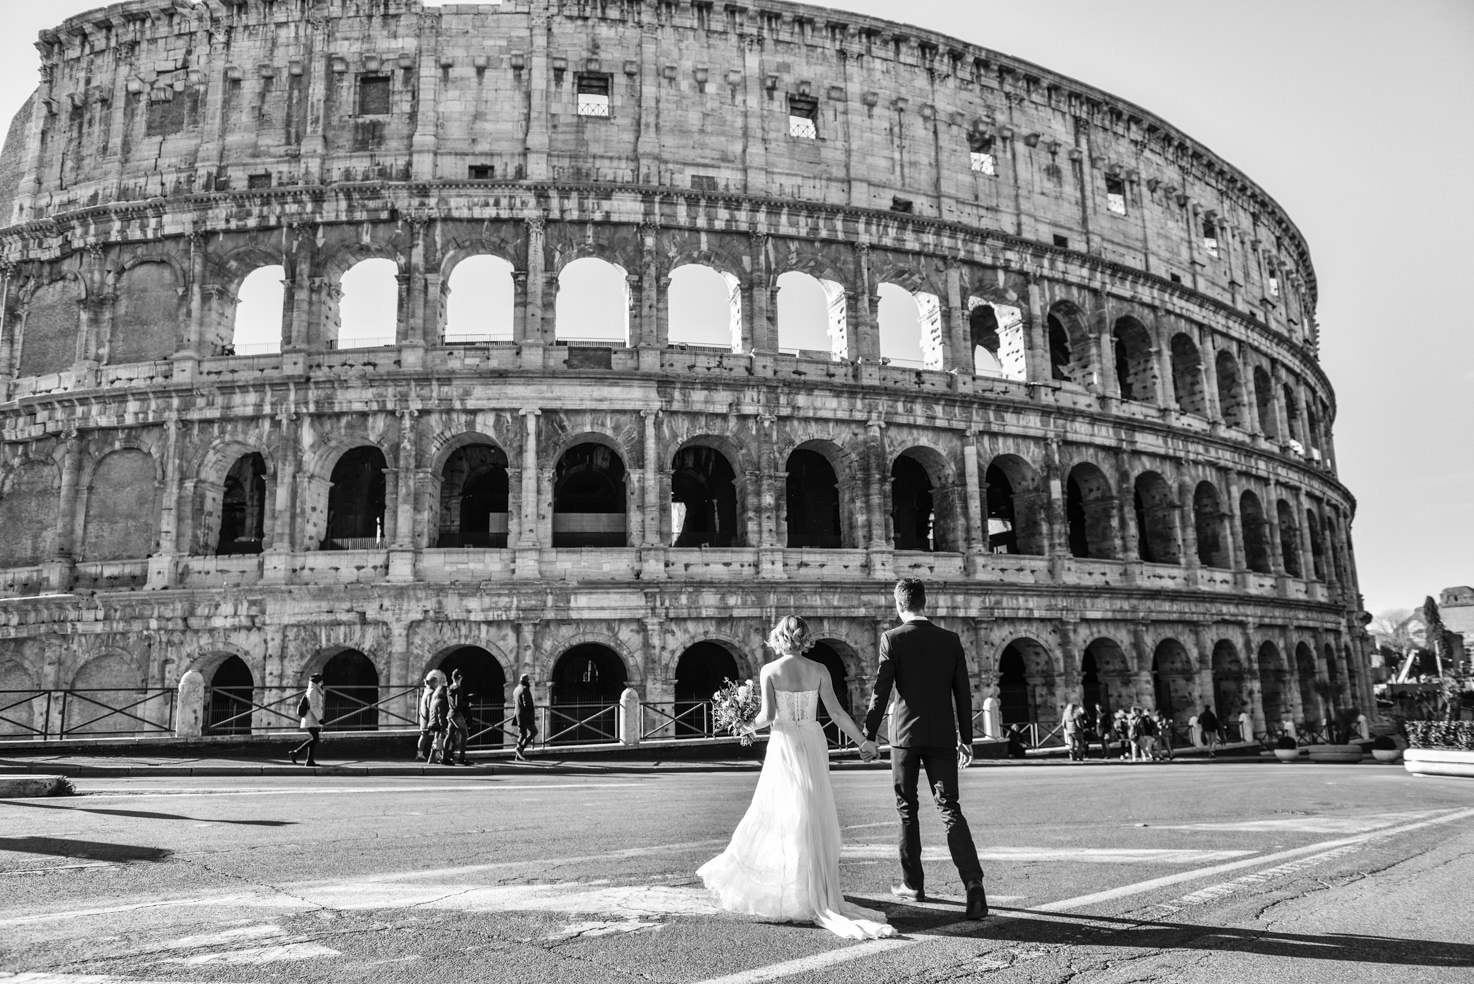 Bridal couple in front of the Colosseum